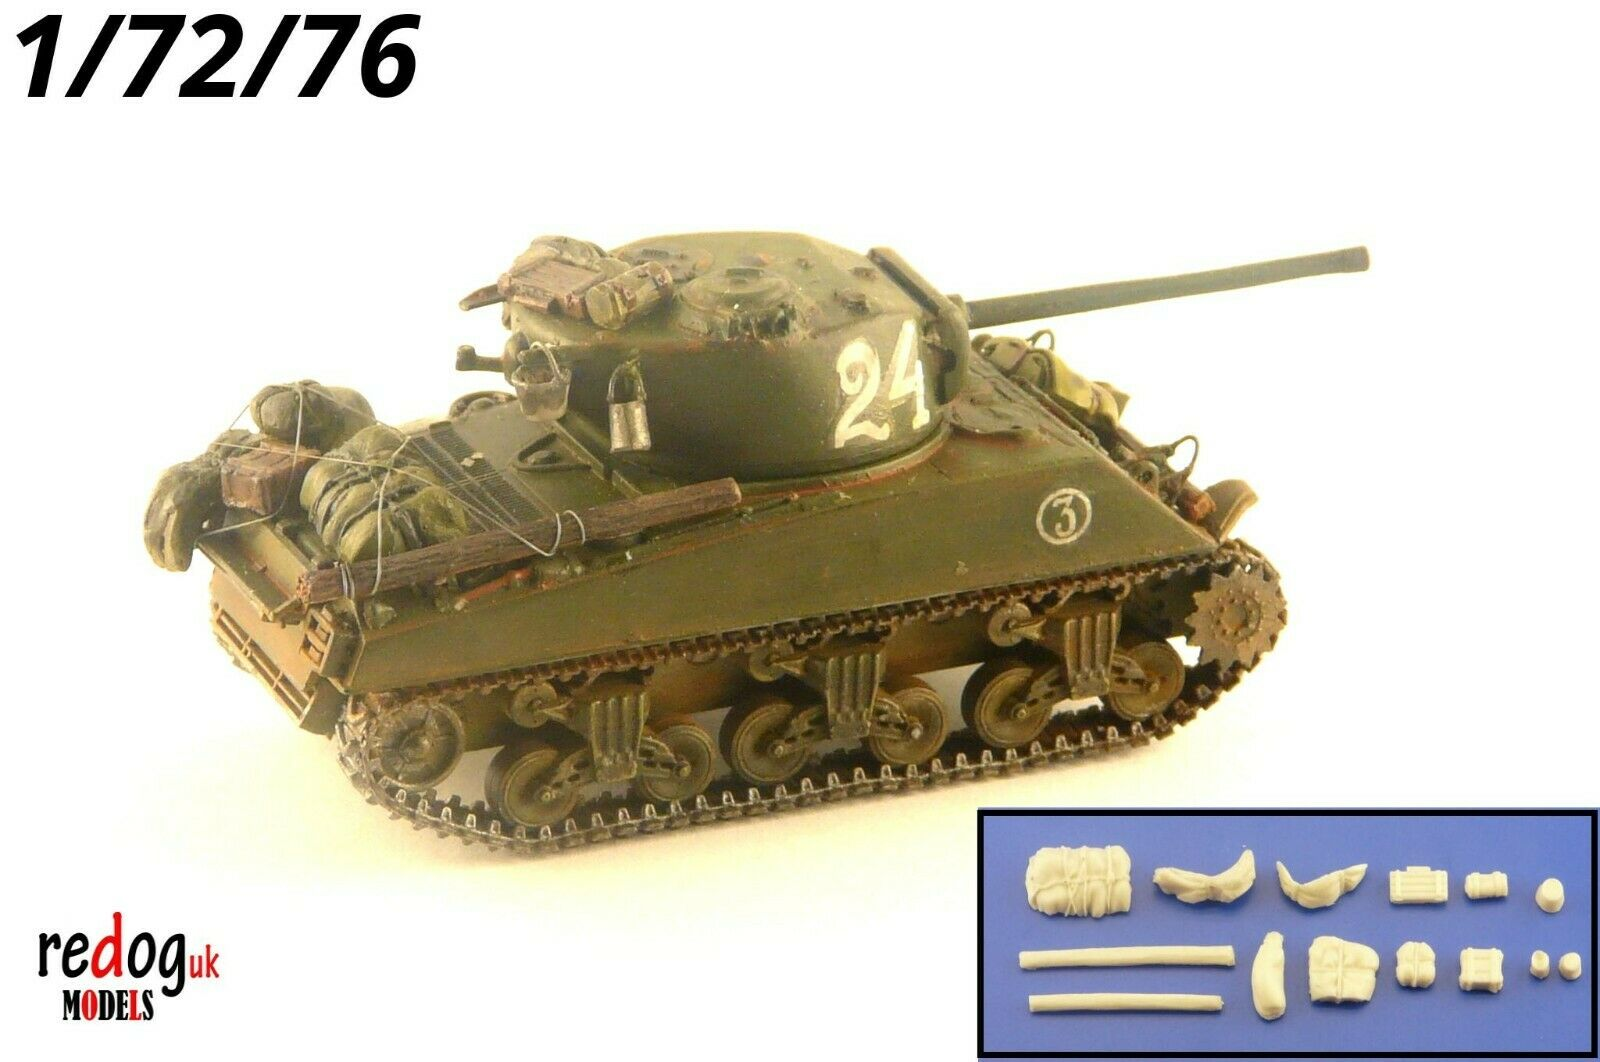 1:72 M4 Sherman in Russian Service Tank Military Scale Model Stowage Kit Accessories S8 - redoguk